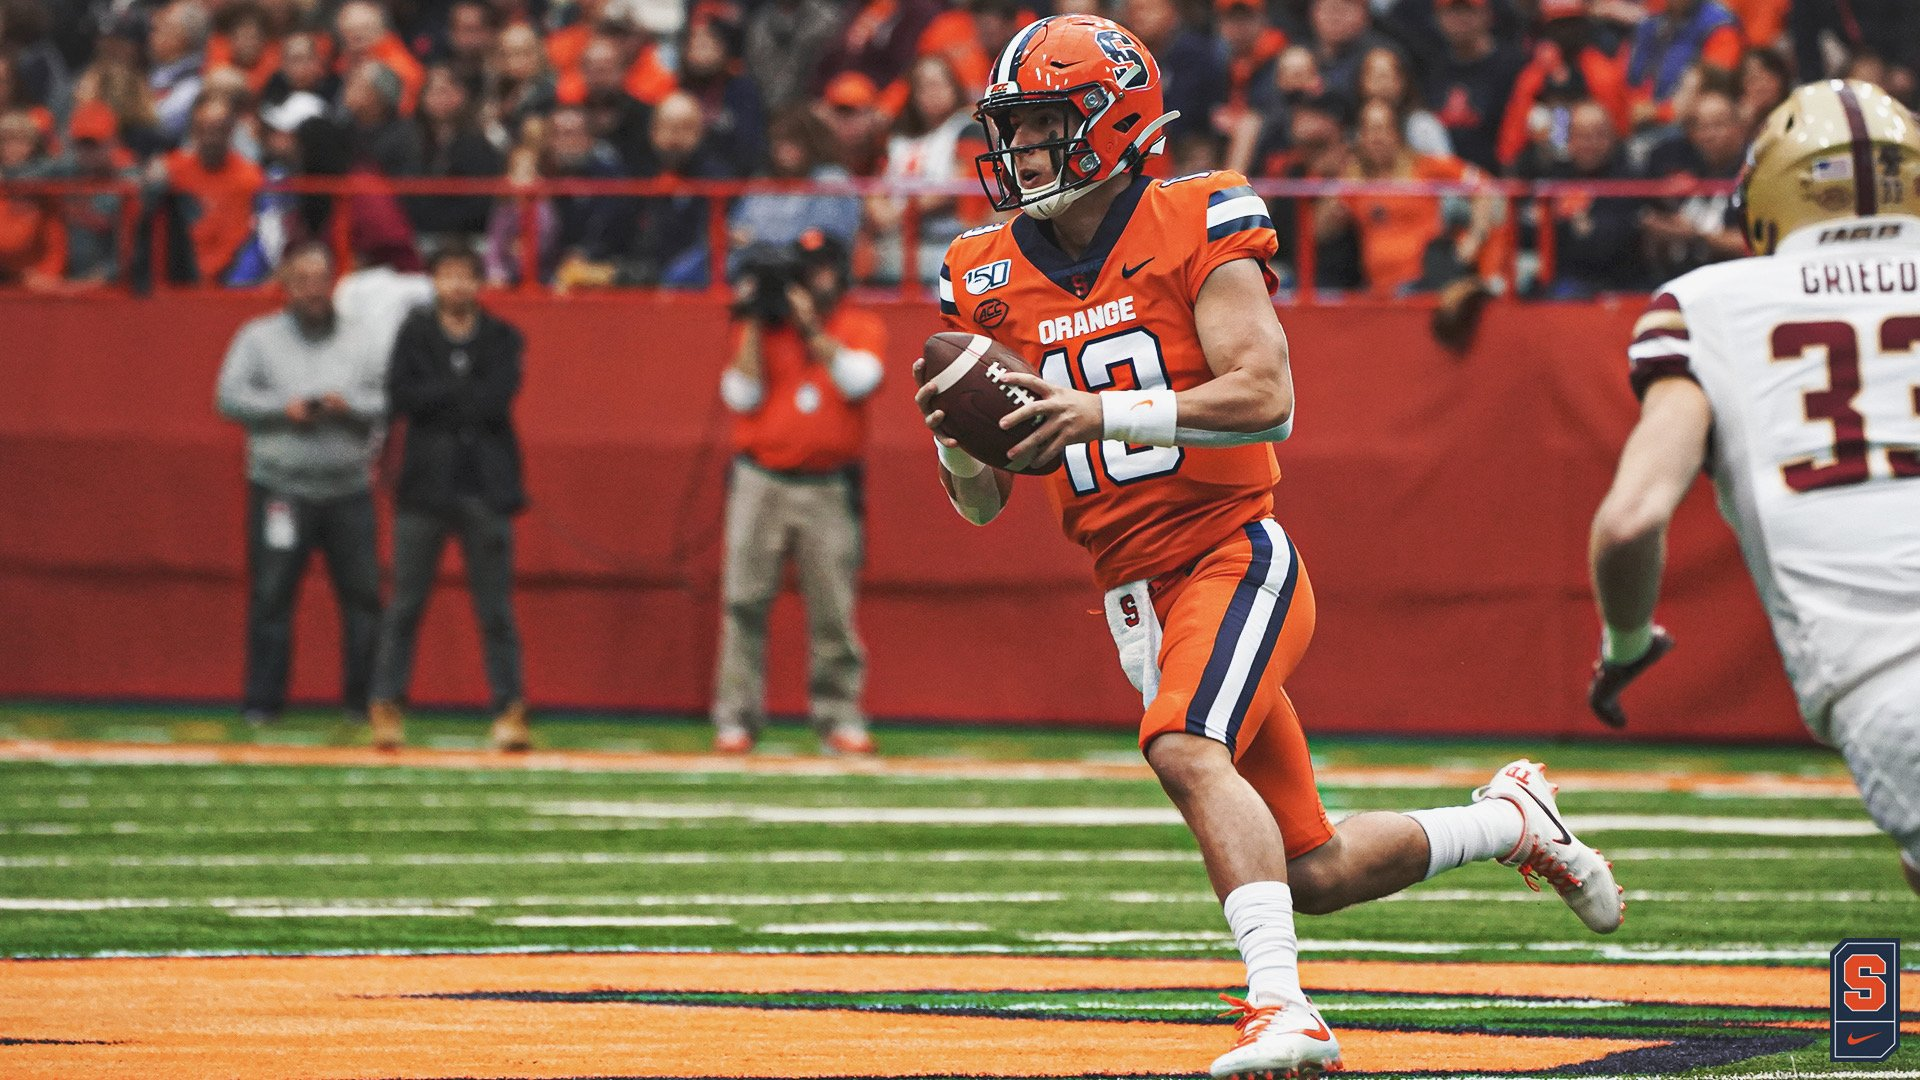 ORANGE GAME DAY: Syracuse takes on Boston College at the Dome today (preview, media & info)